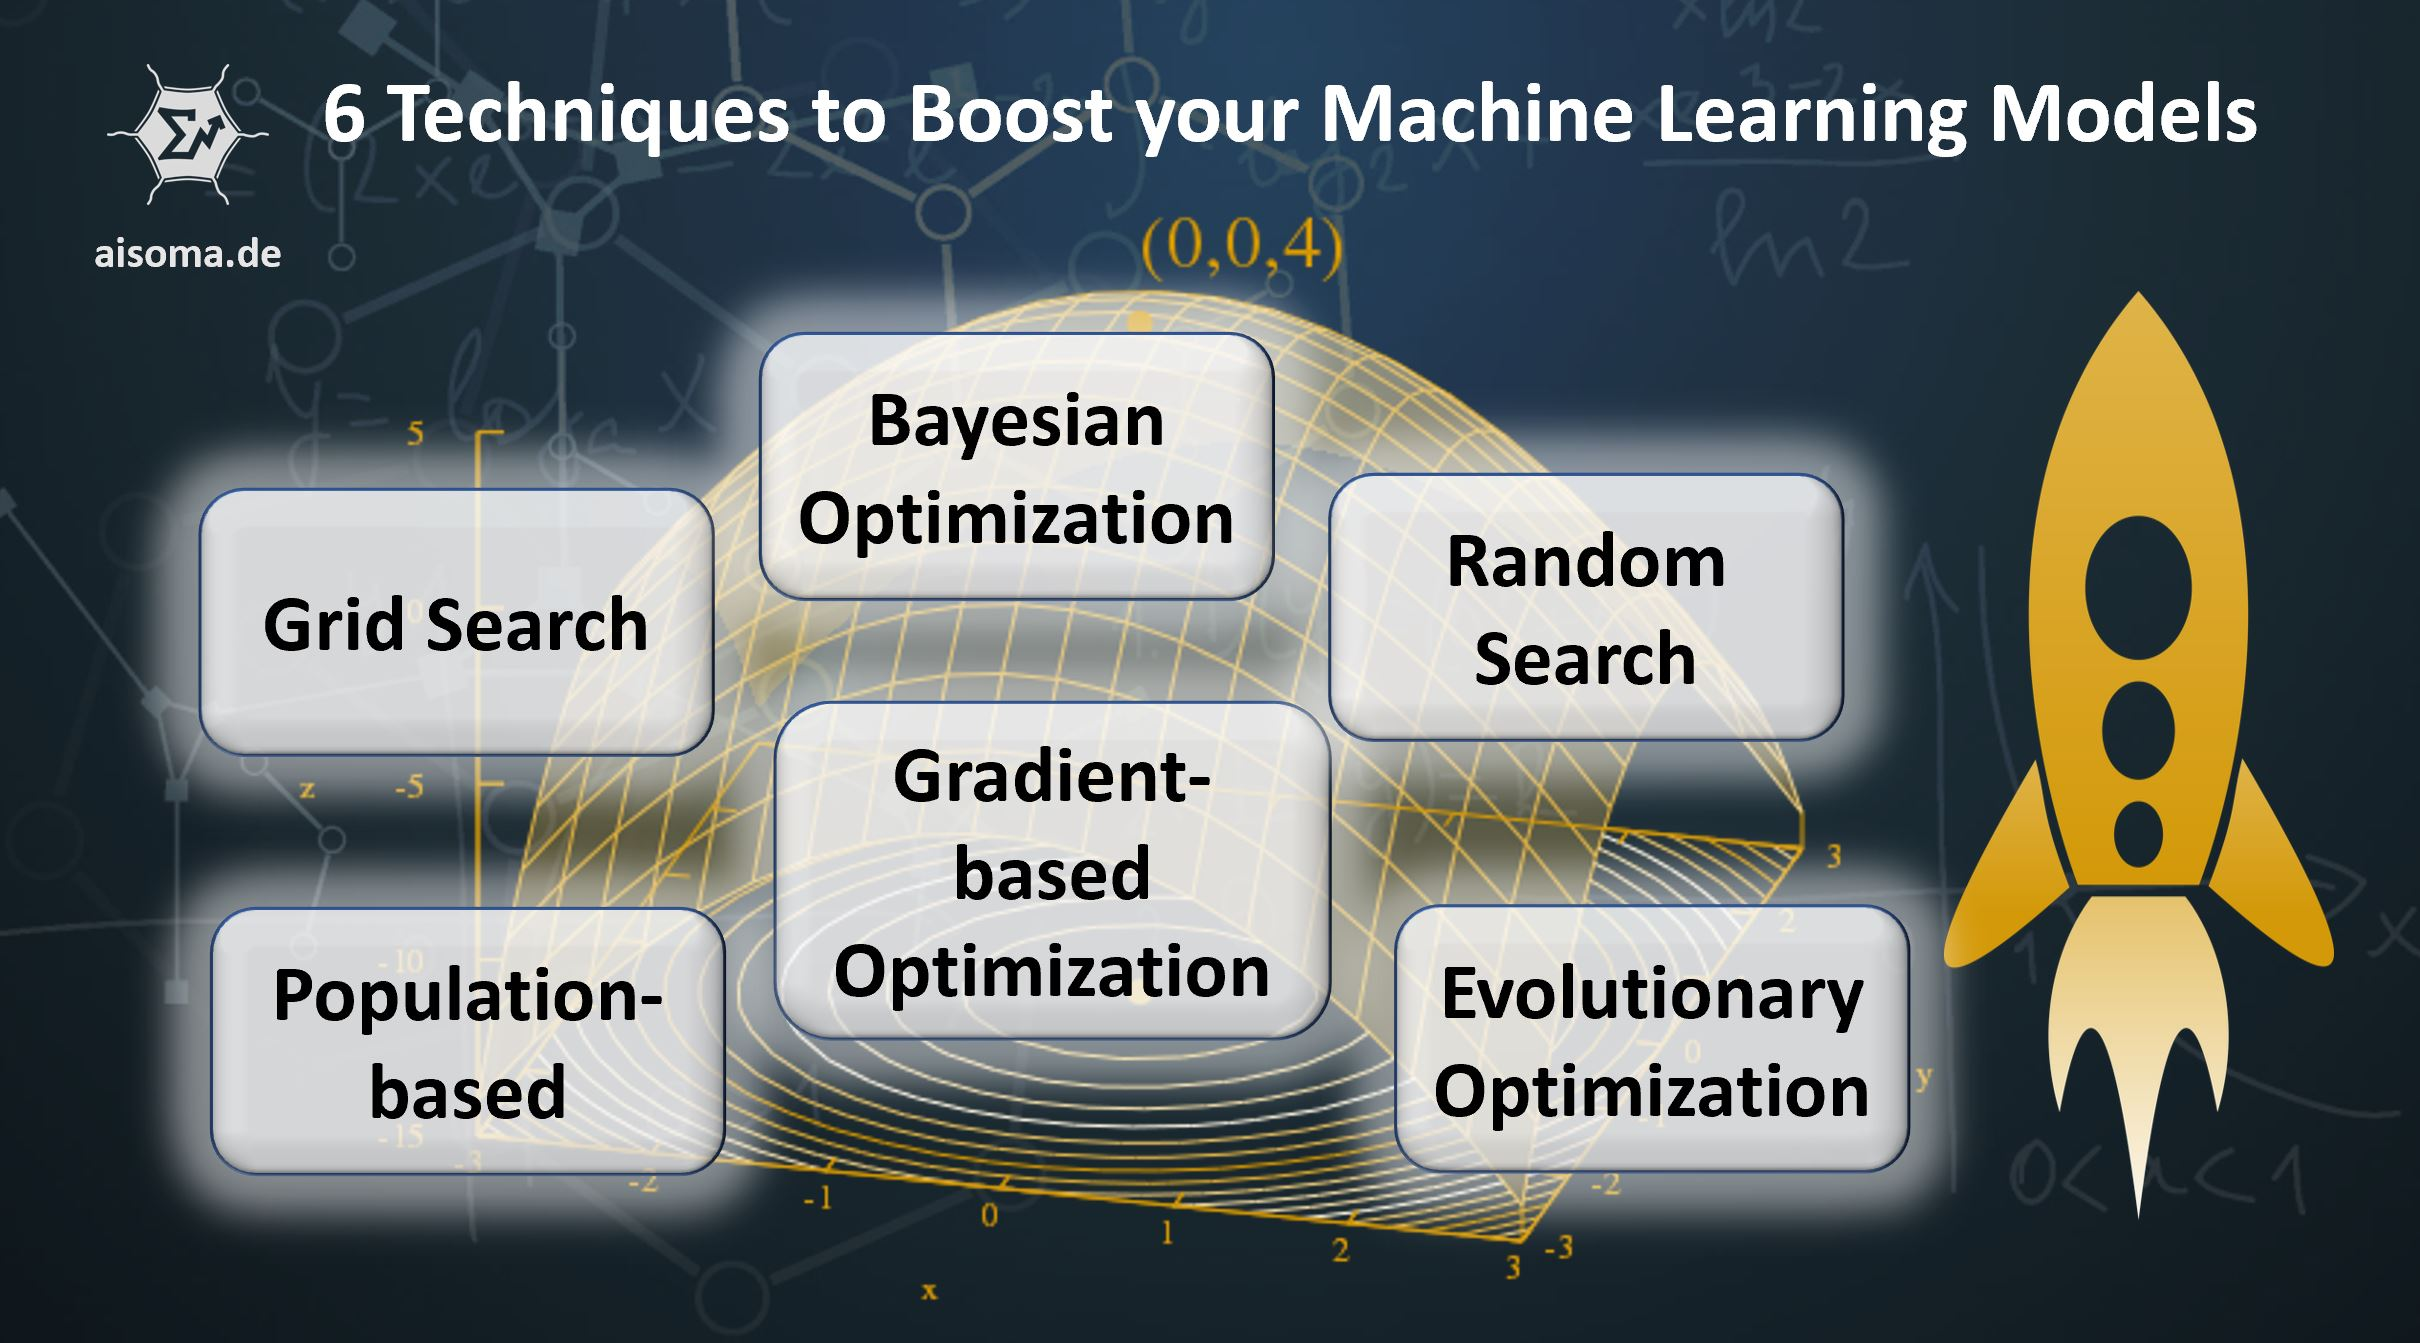 6 Techniques to Boost your Machine Learning Models